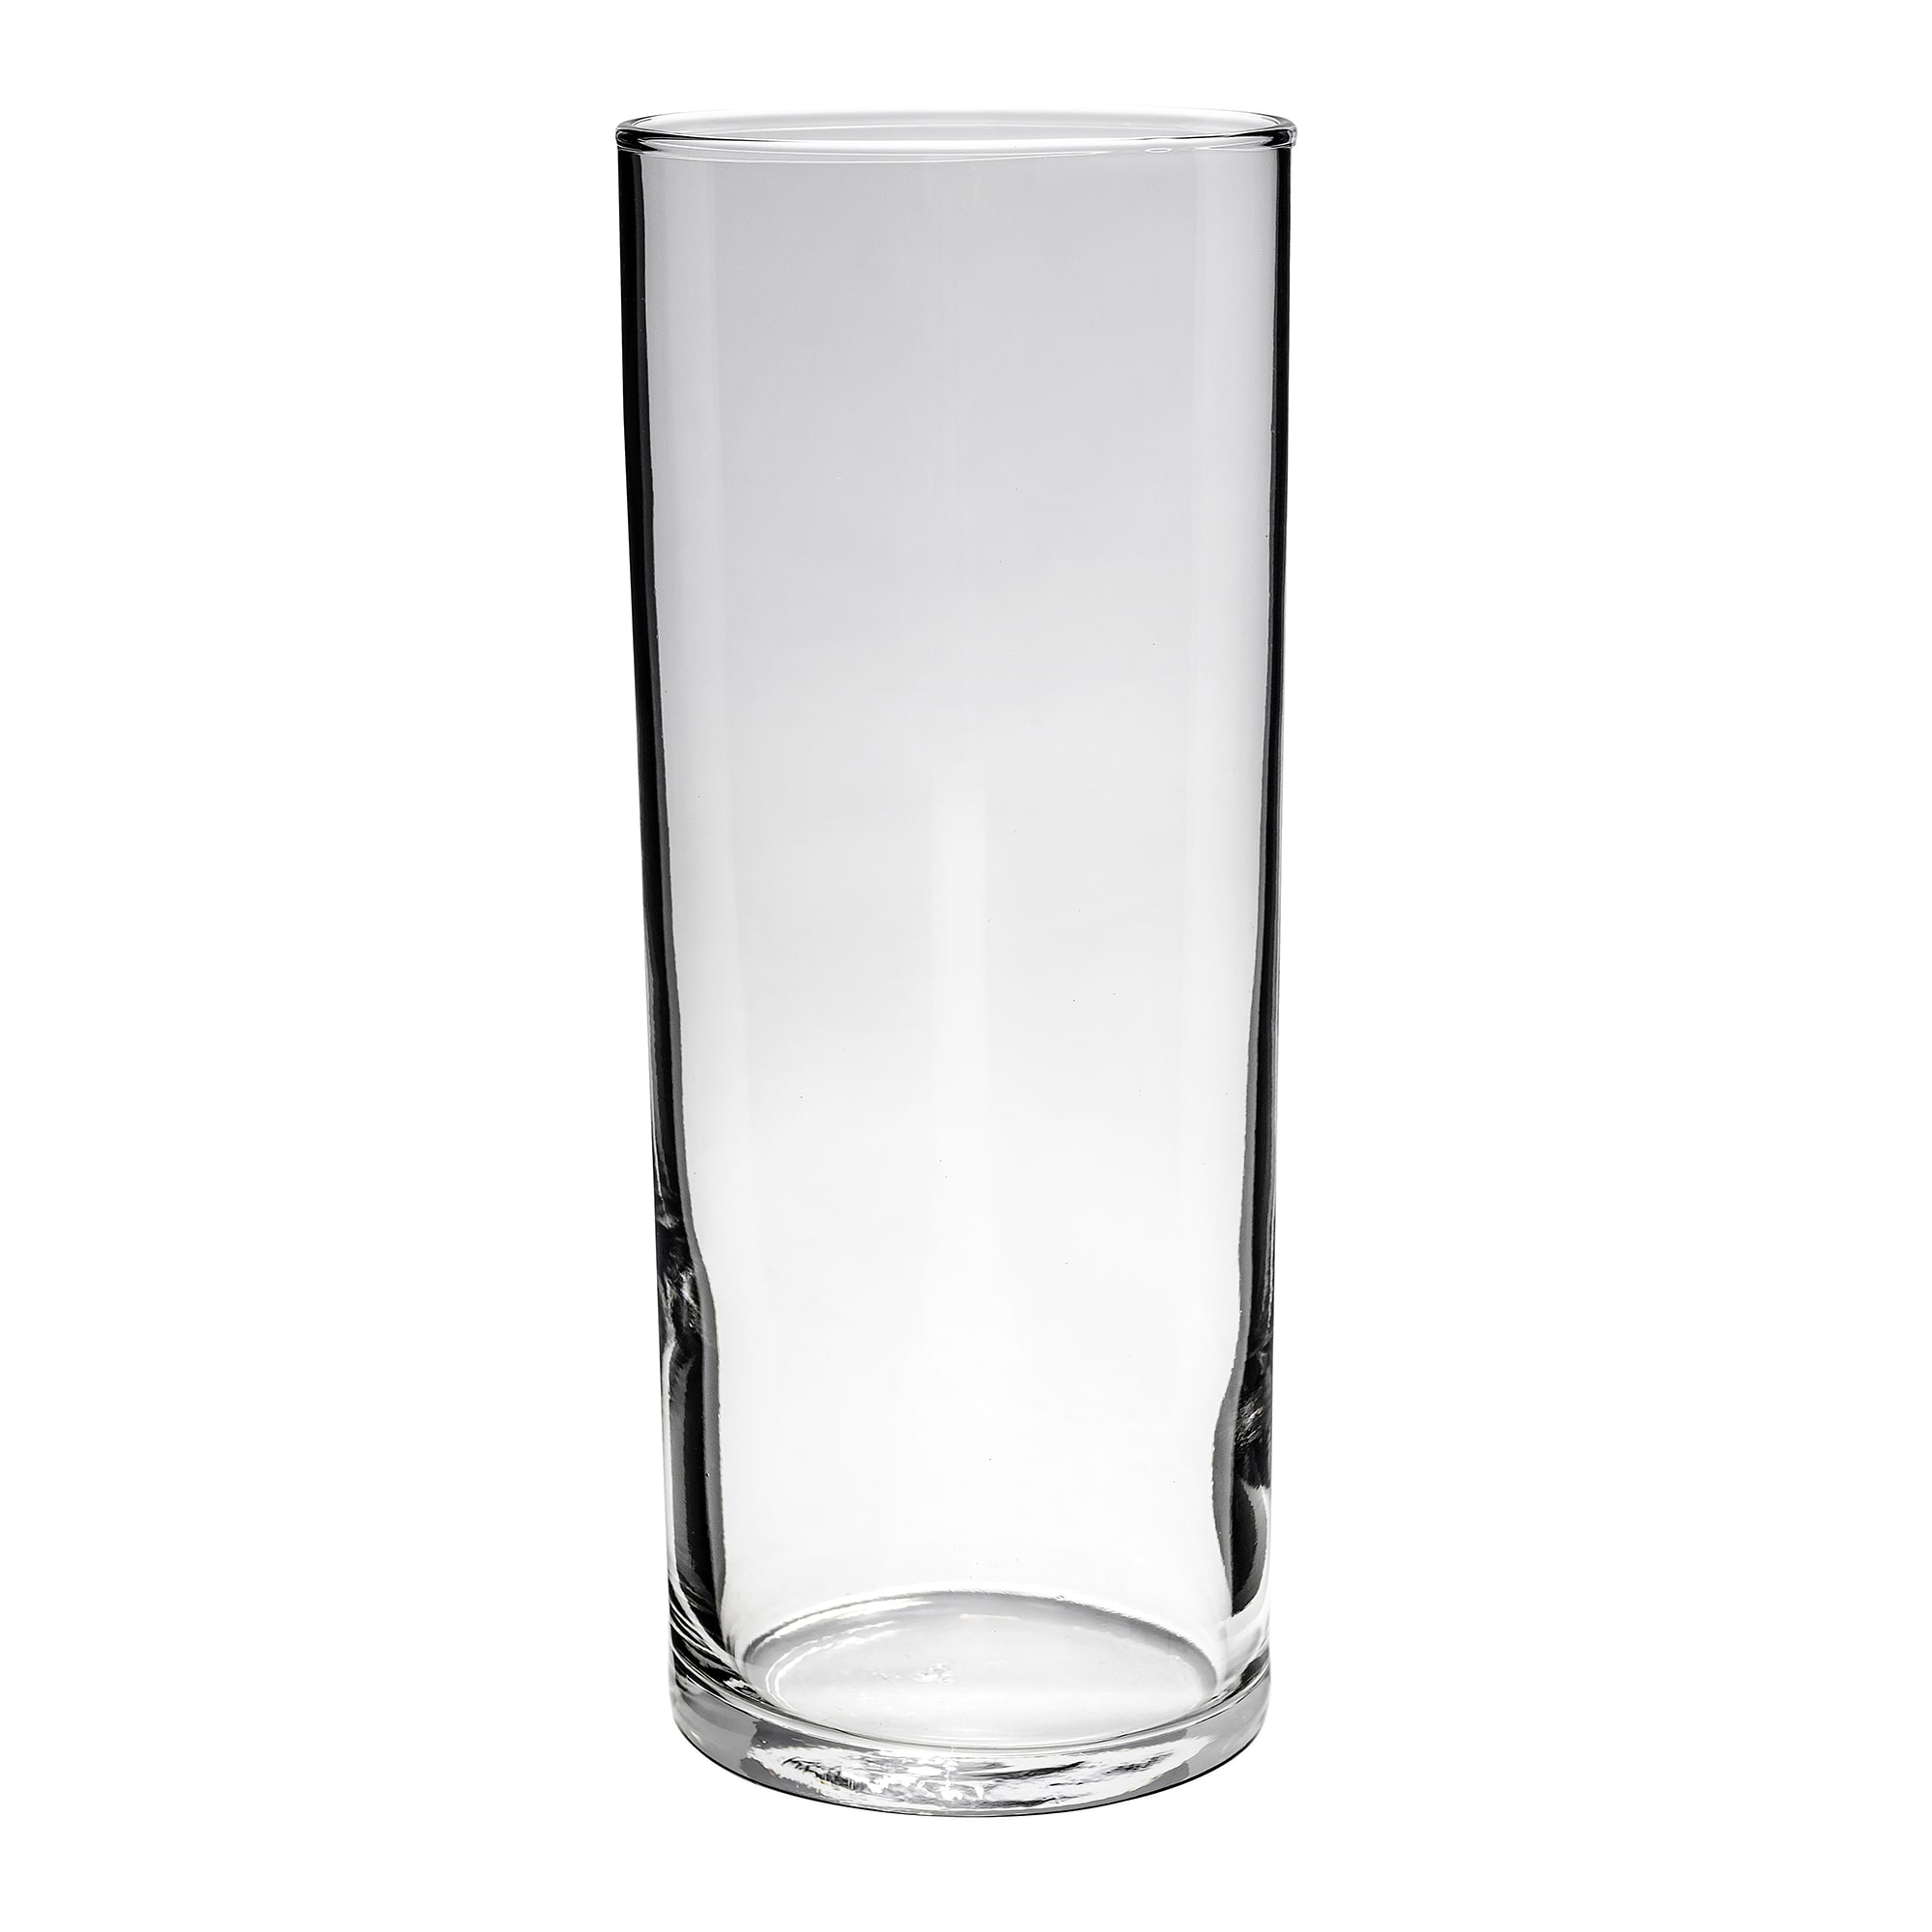 Libbey 96 12 oz Straight Sided Zombie Glass - Safedge Rim Guarantee